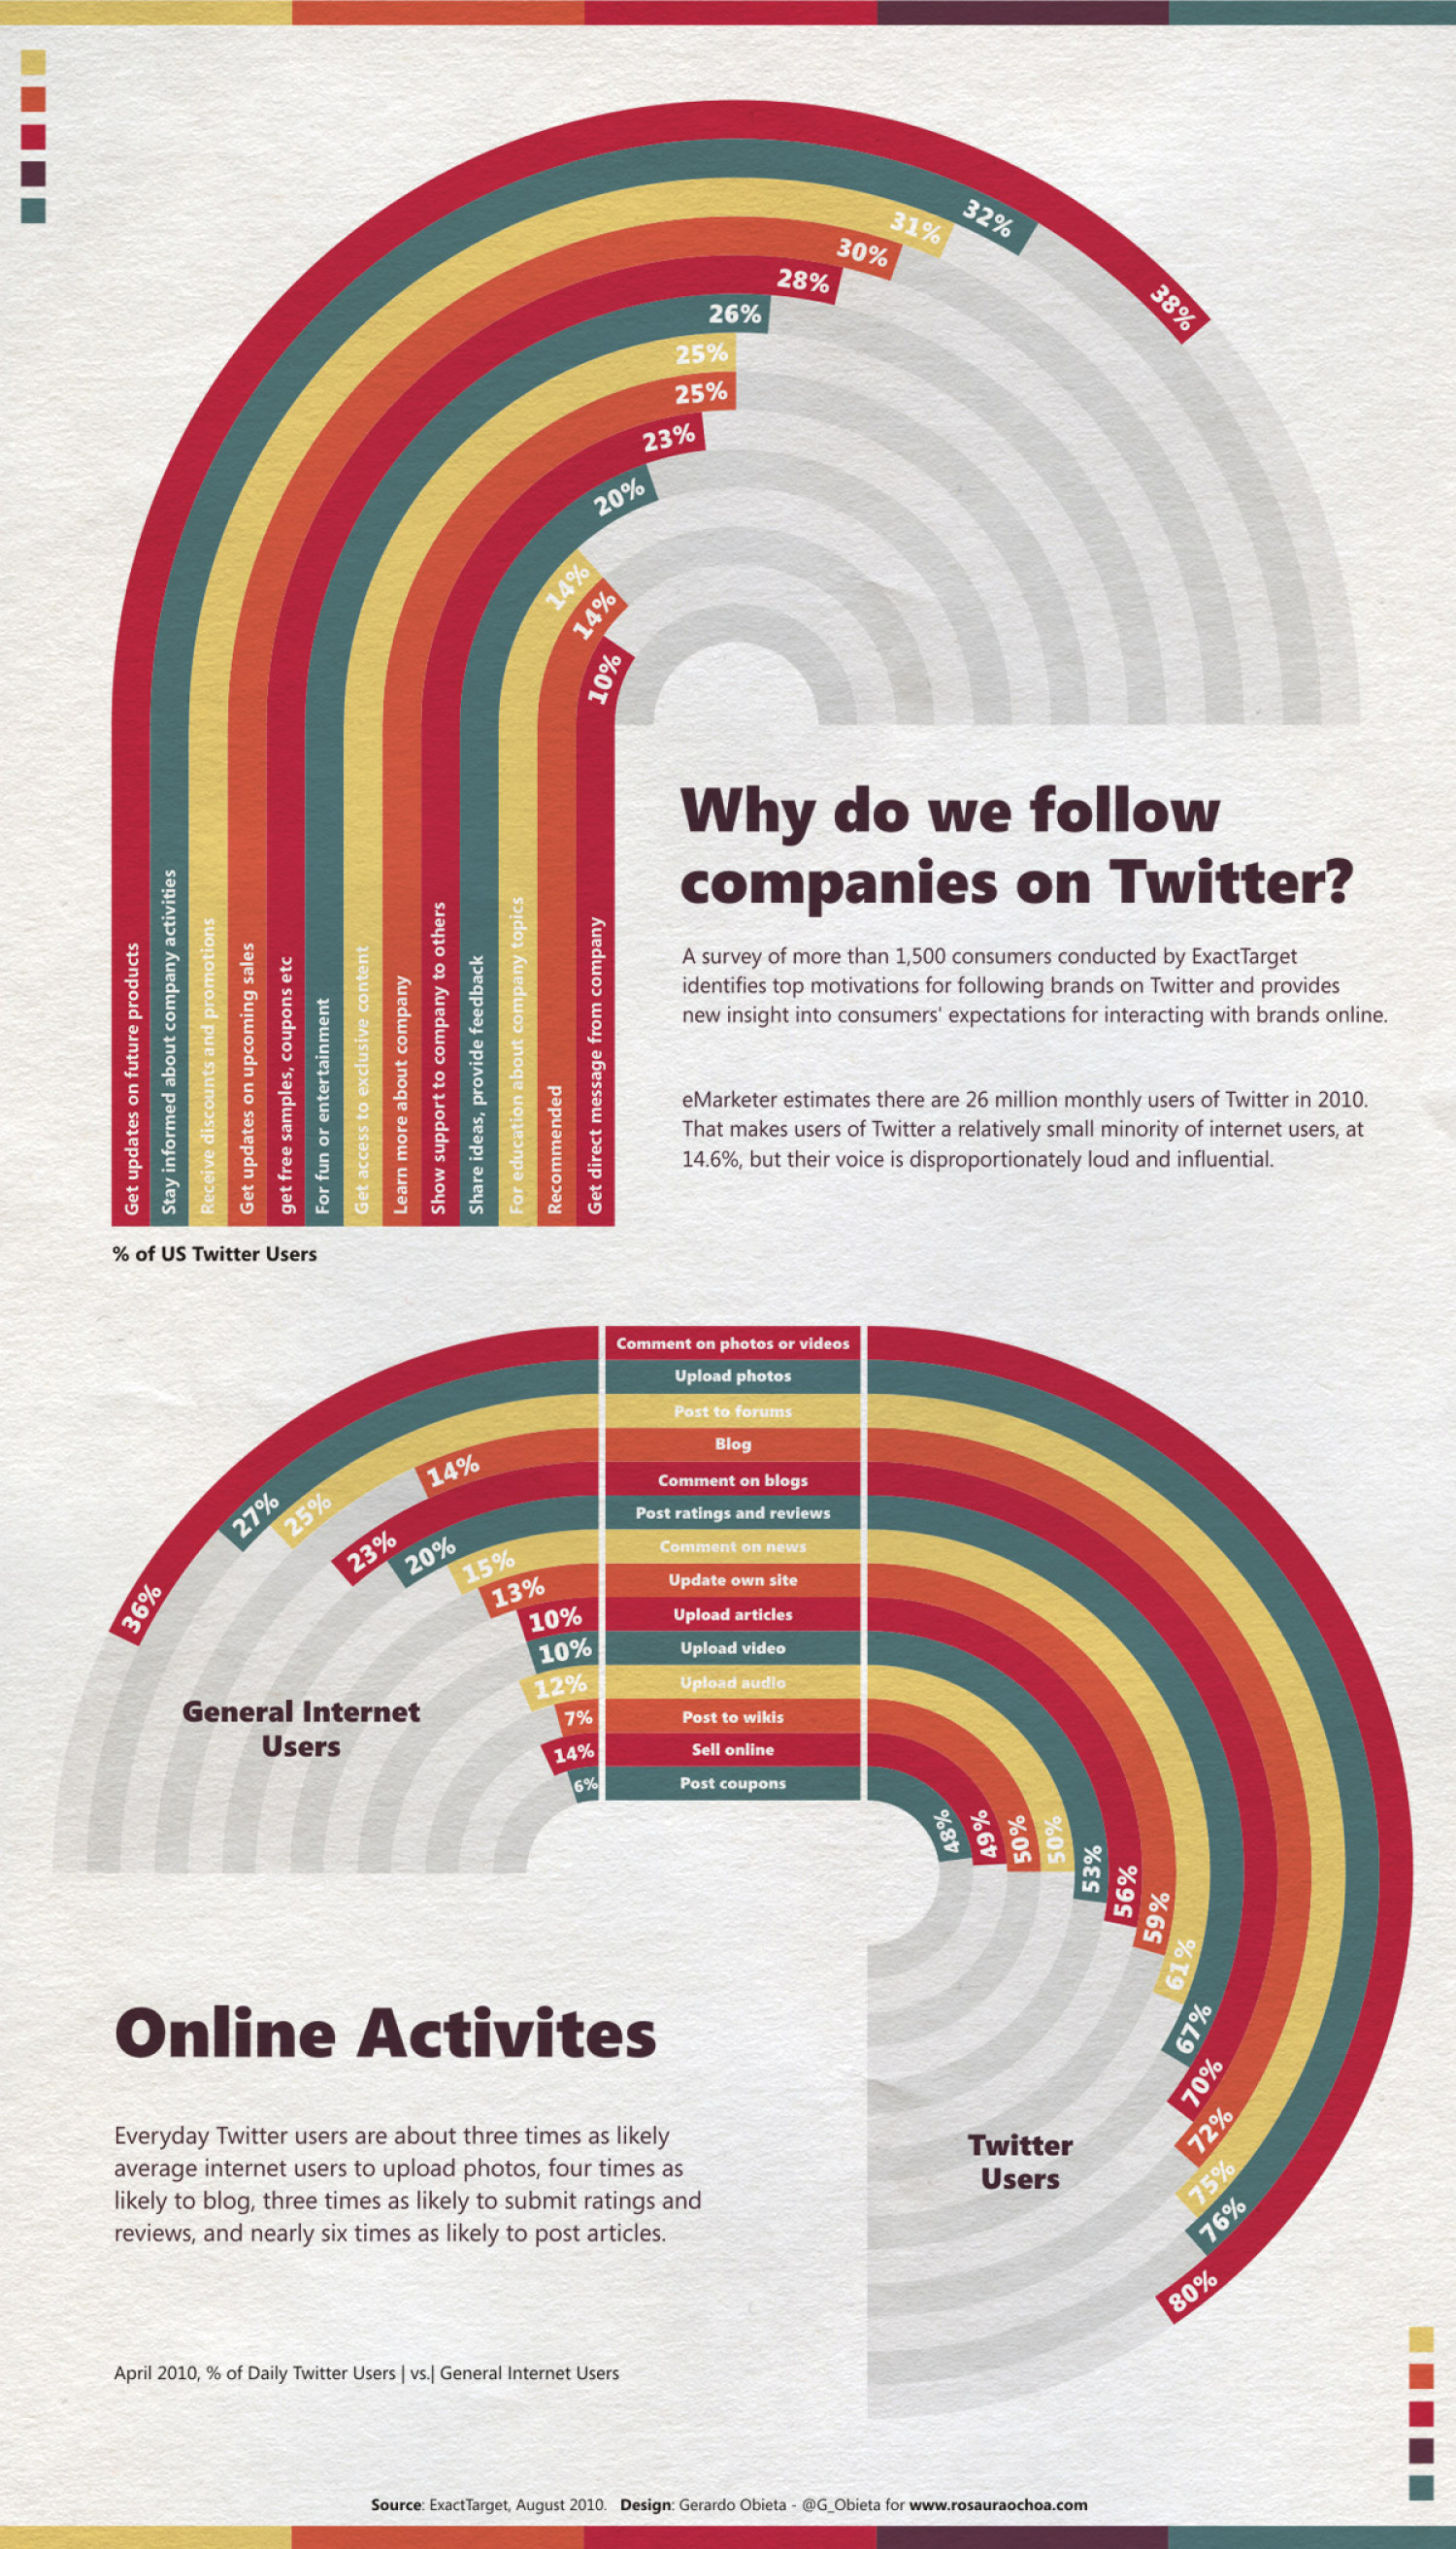 Why Do We Follow Companies on Twitter? Infographic